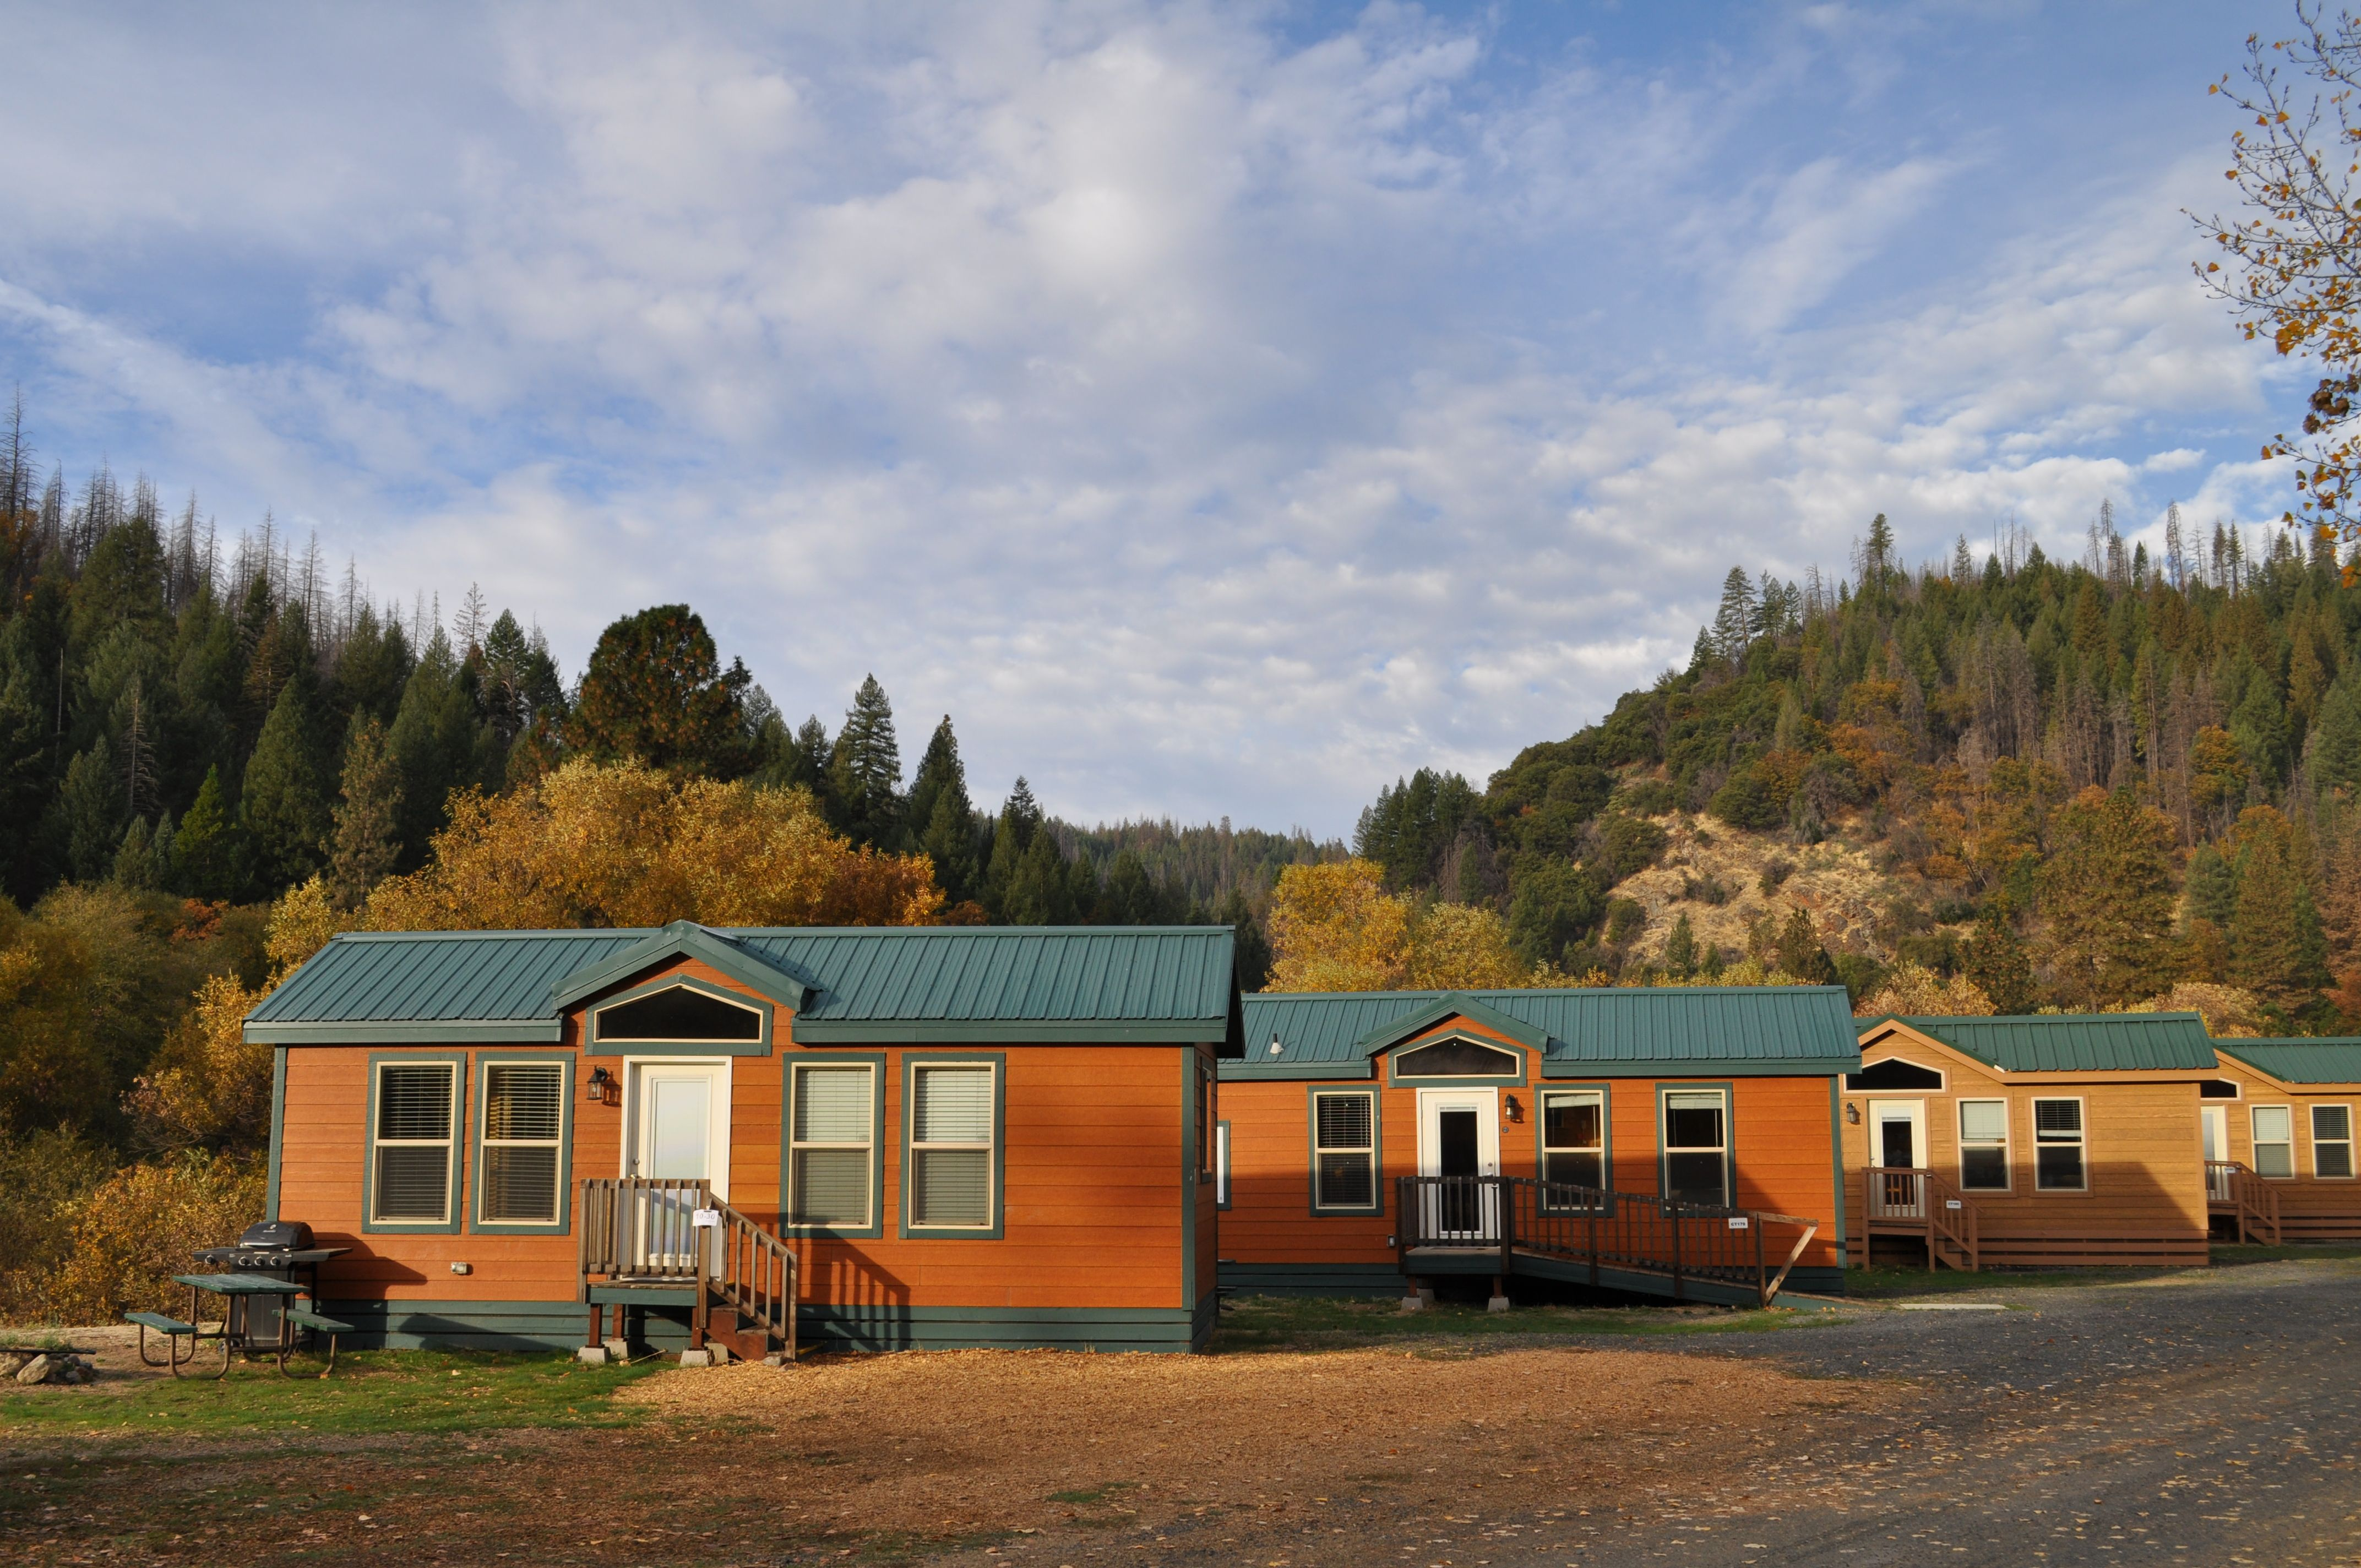 snow sale for lakefront big in cabin near california rentals vacation cabins prices mountain summit lake bear under boulder bay